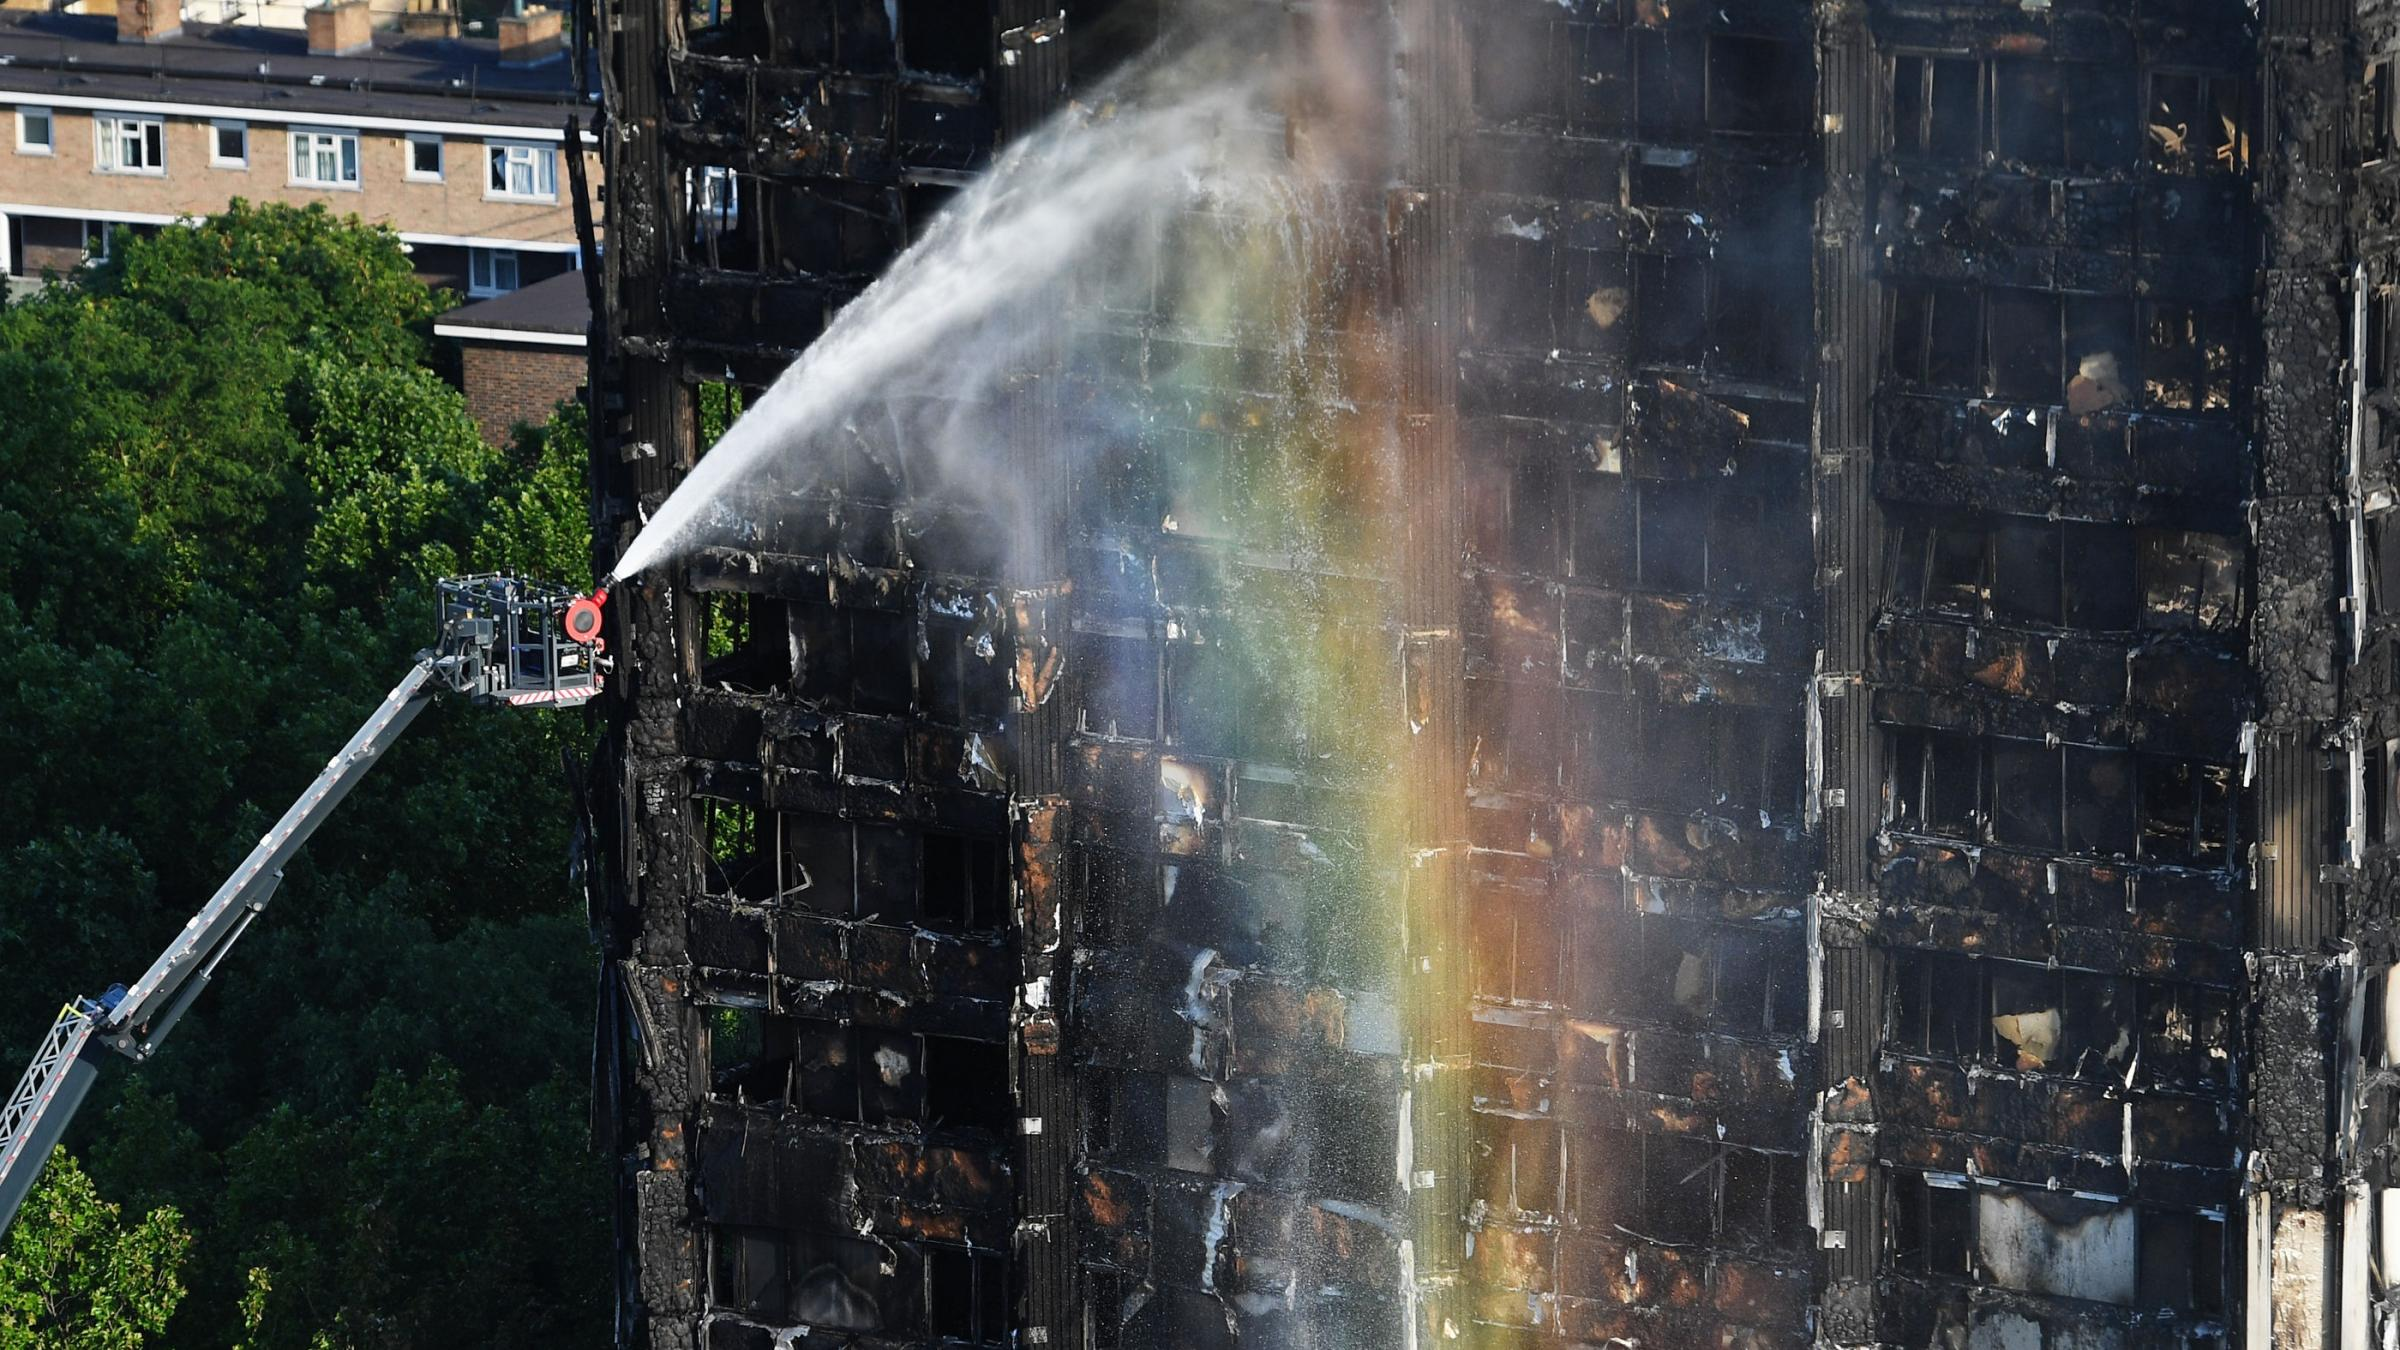 London fire: UK police launch criminal probe into Grenfell Tower inferno